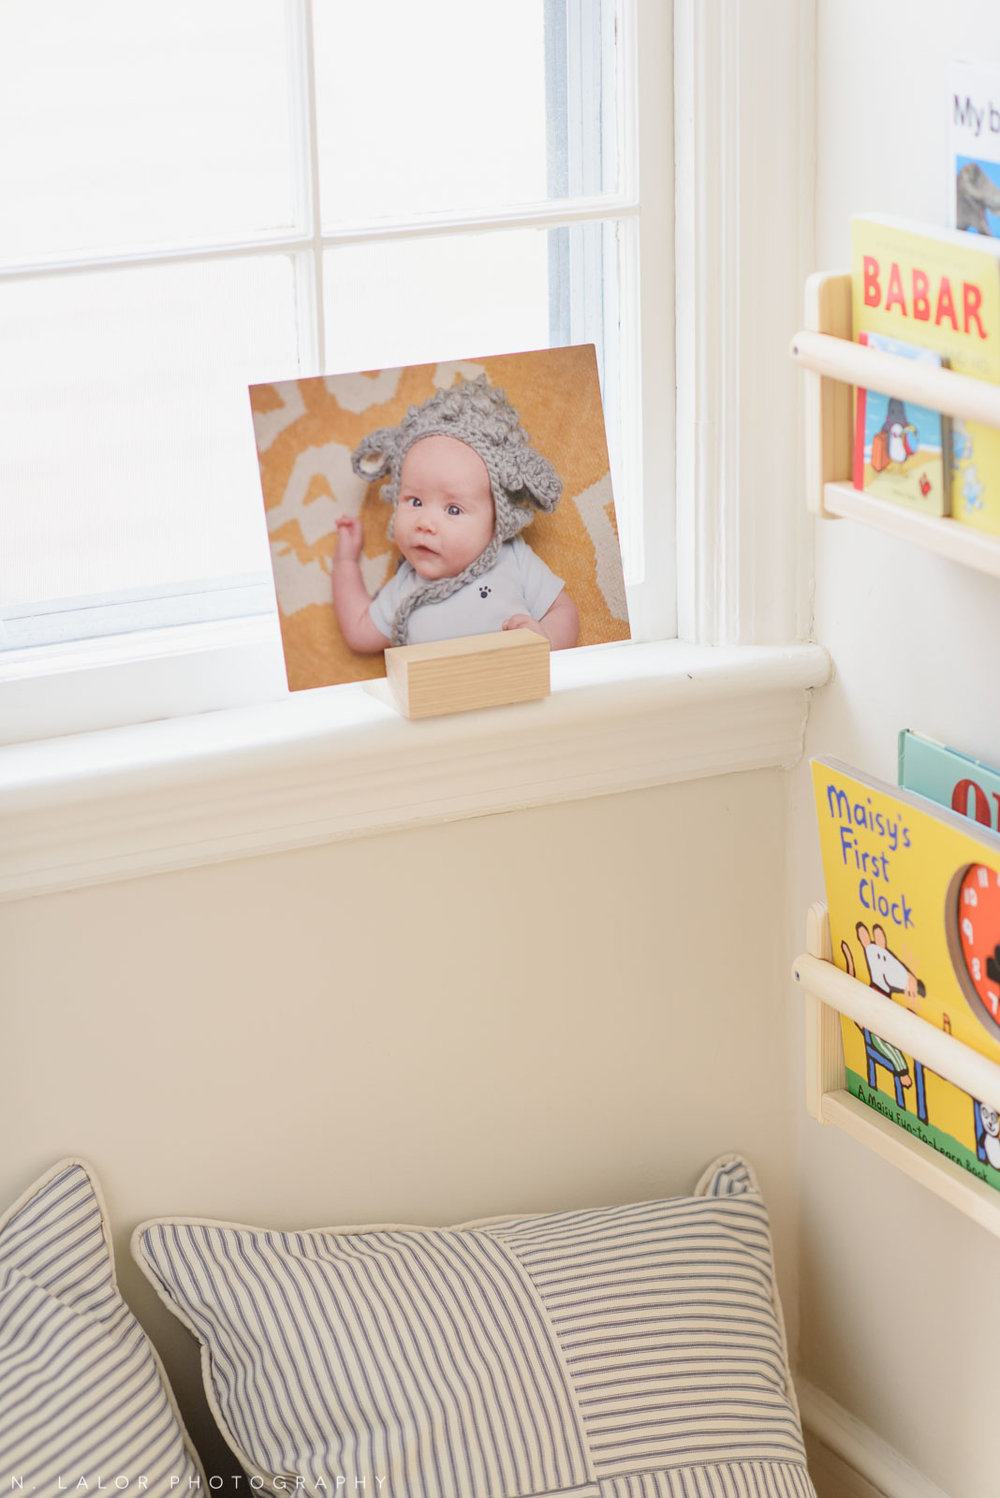 Baby photo print in my son's room. Photograph by N. Lalor Photography.